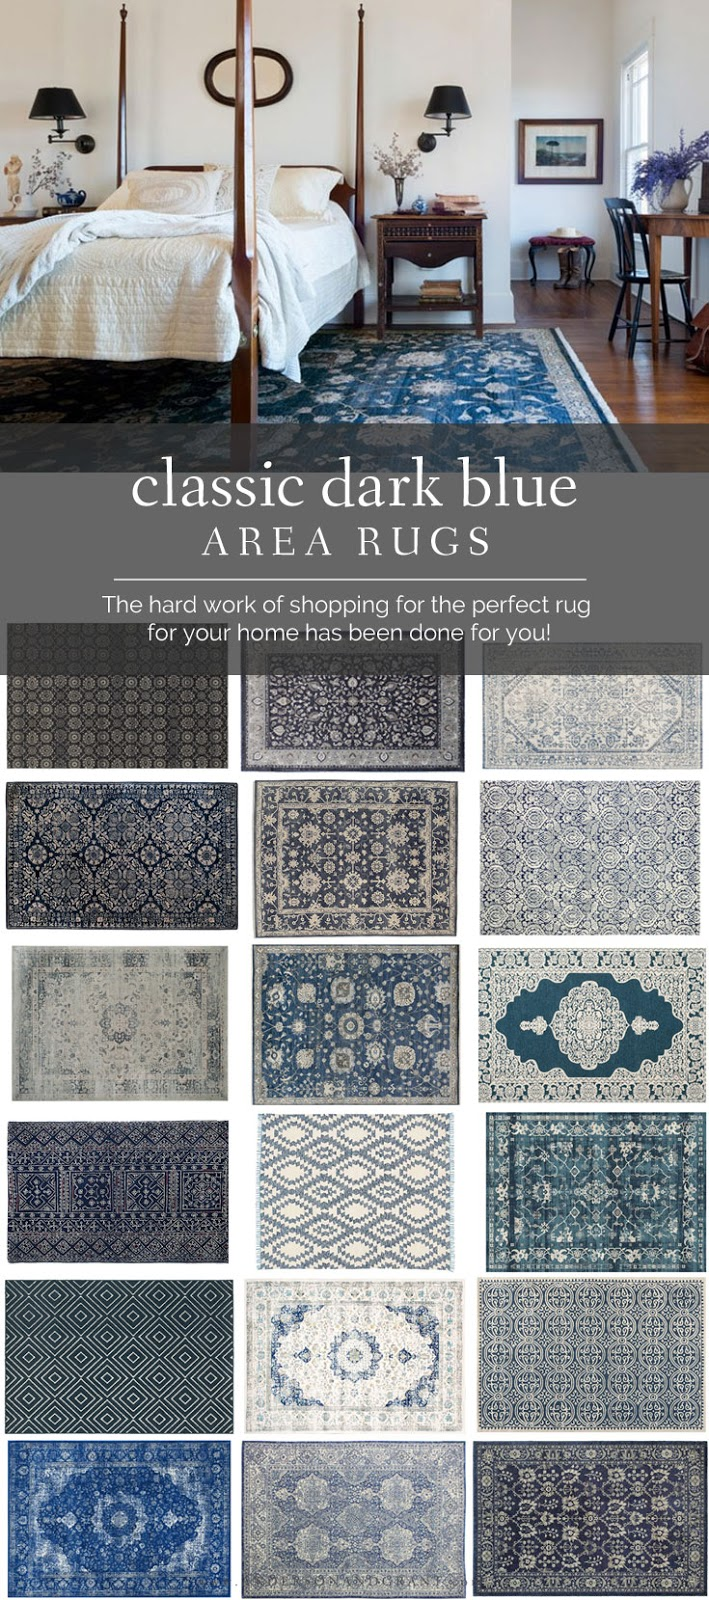 If you've been looking for a dark blue area rug for your home, search no further than this post filled with 20 classic choices available online. #decorating #choosingrugs #arearugs #blue